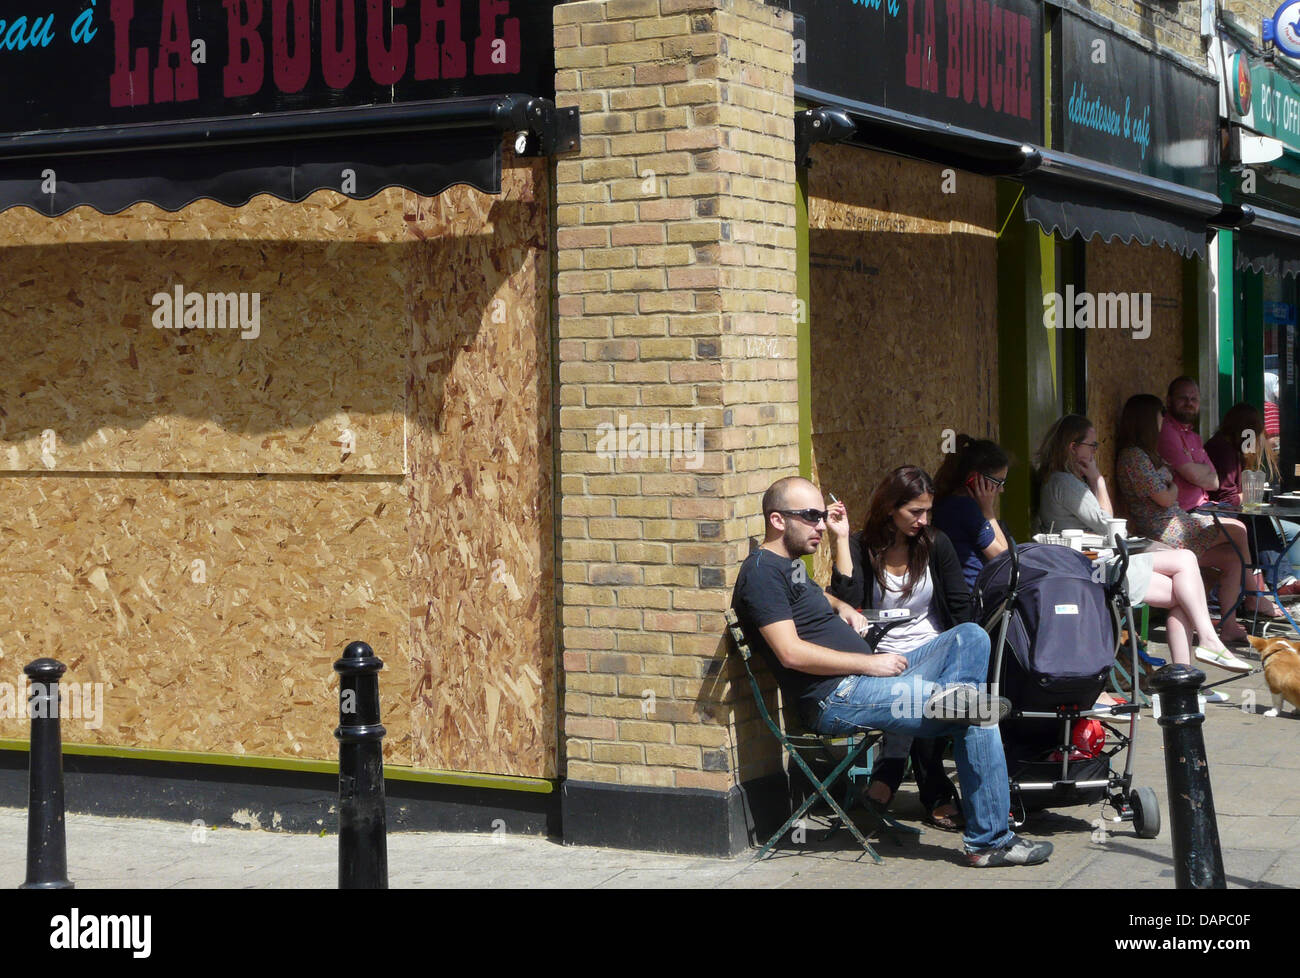 People sit in cafes again at Broadway Market in the district Hackney in London, Great Britain, 10 August 2011. After - Stock Image